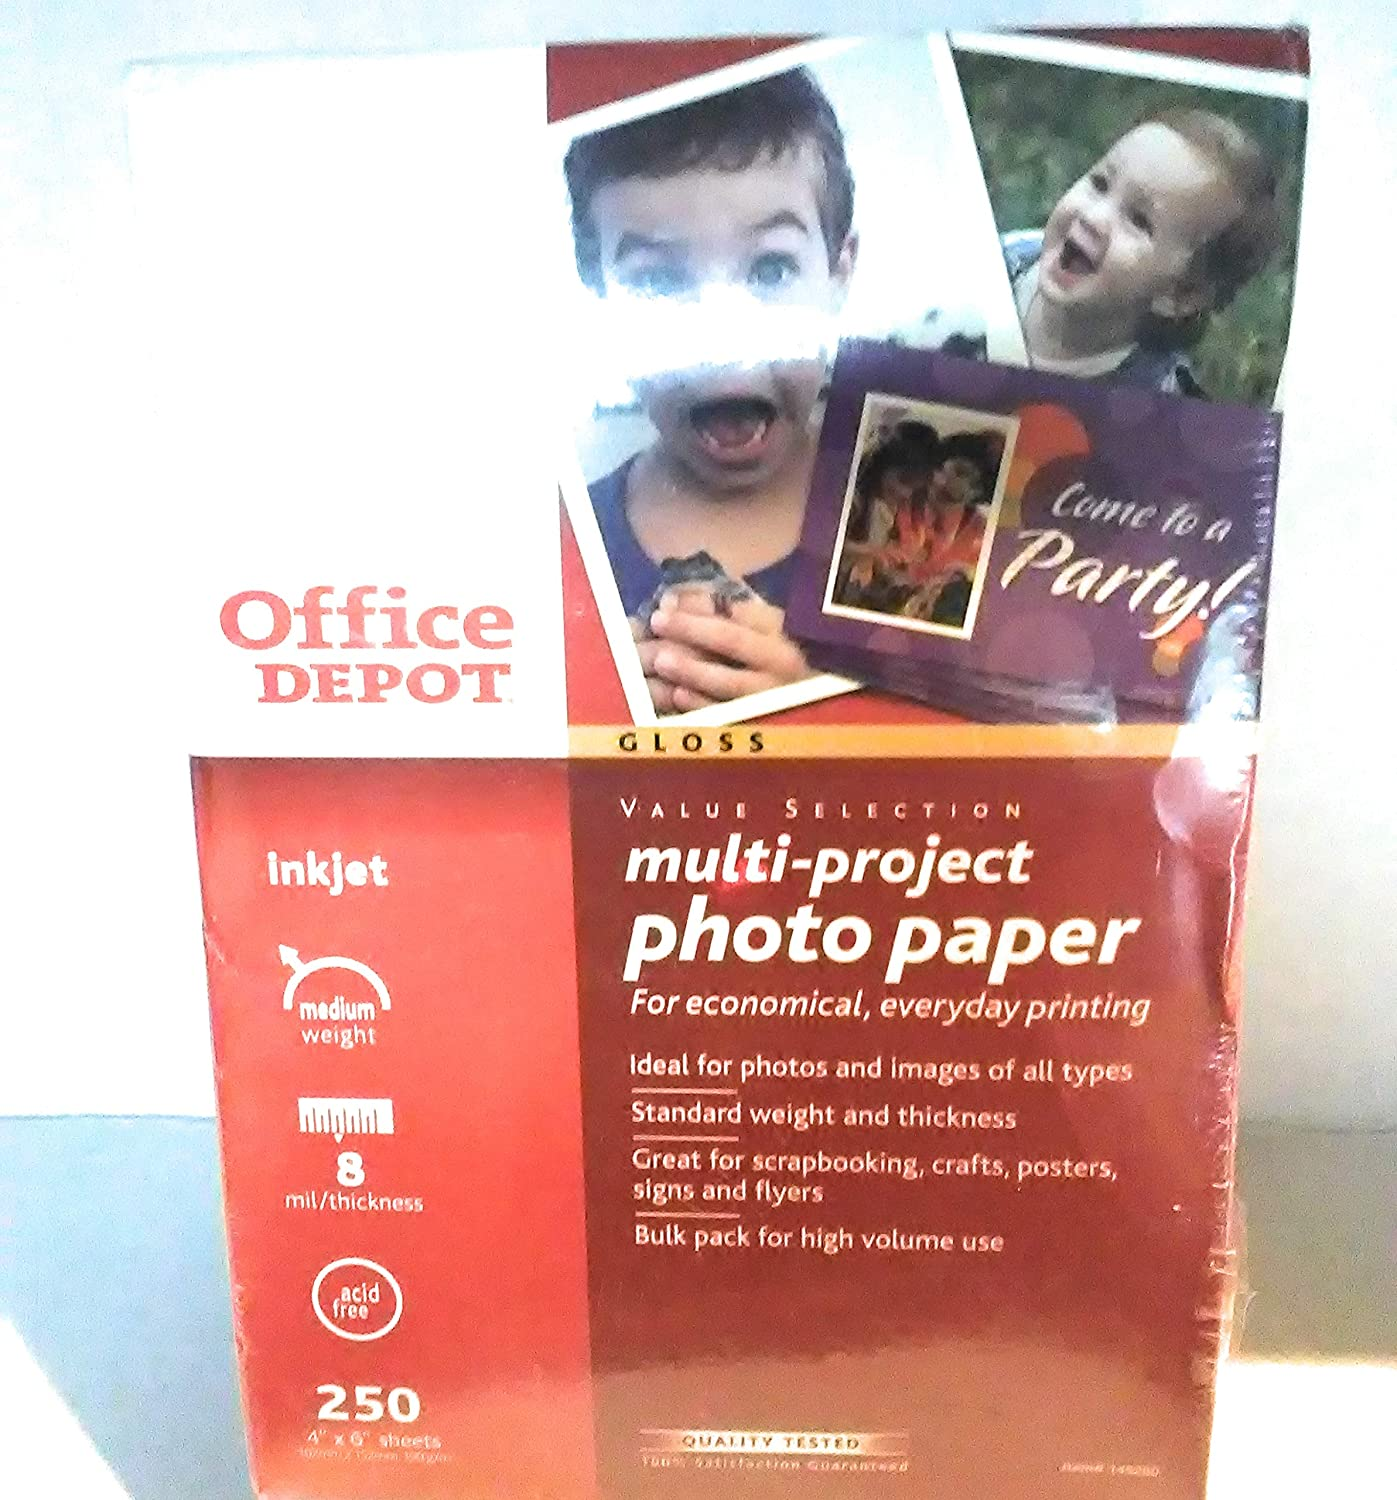 "Office Depot Multi-Project Inkjet Photo Paper Gloss 4"" x 6"" 250-count"